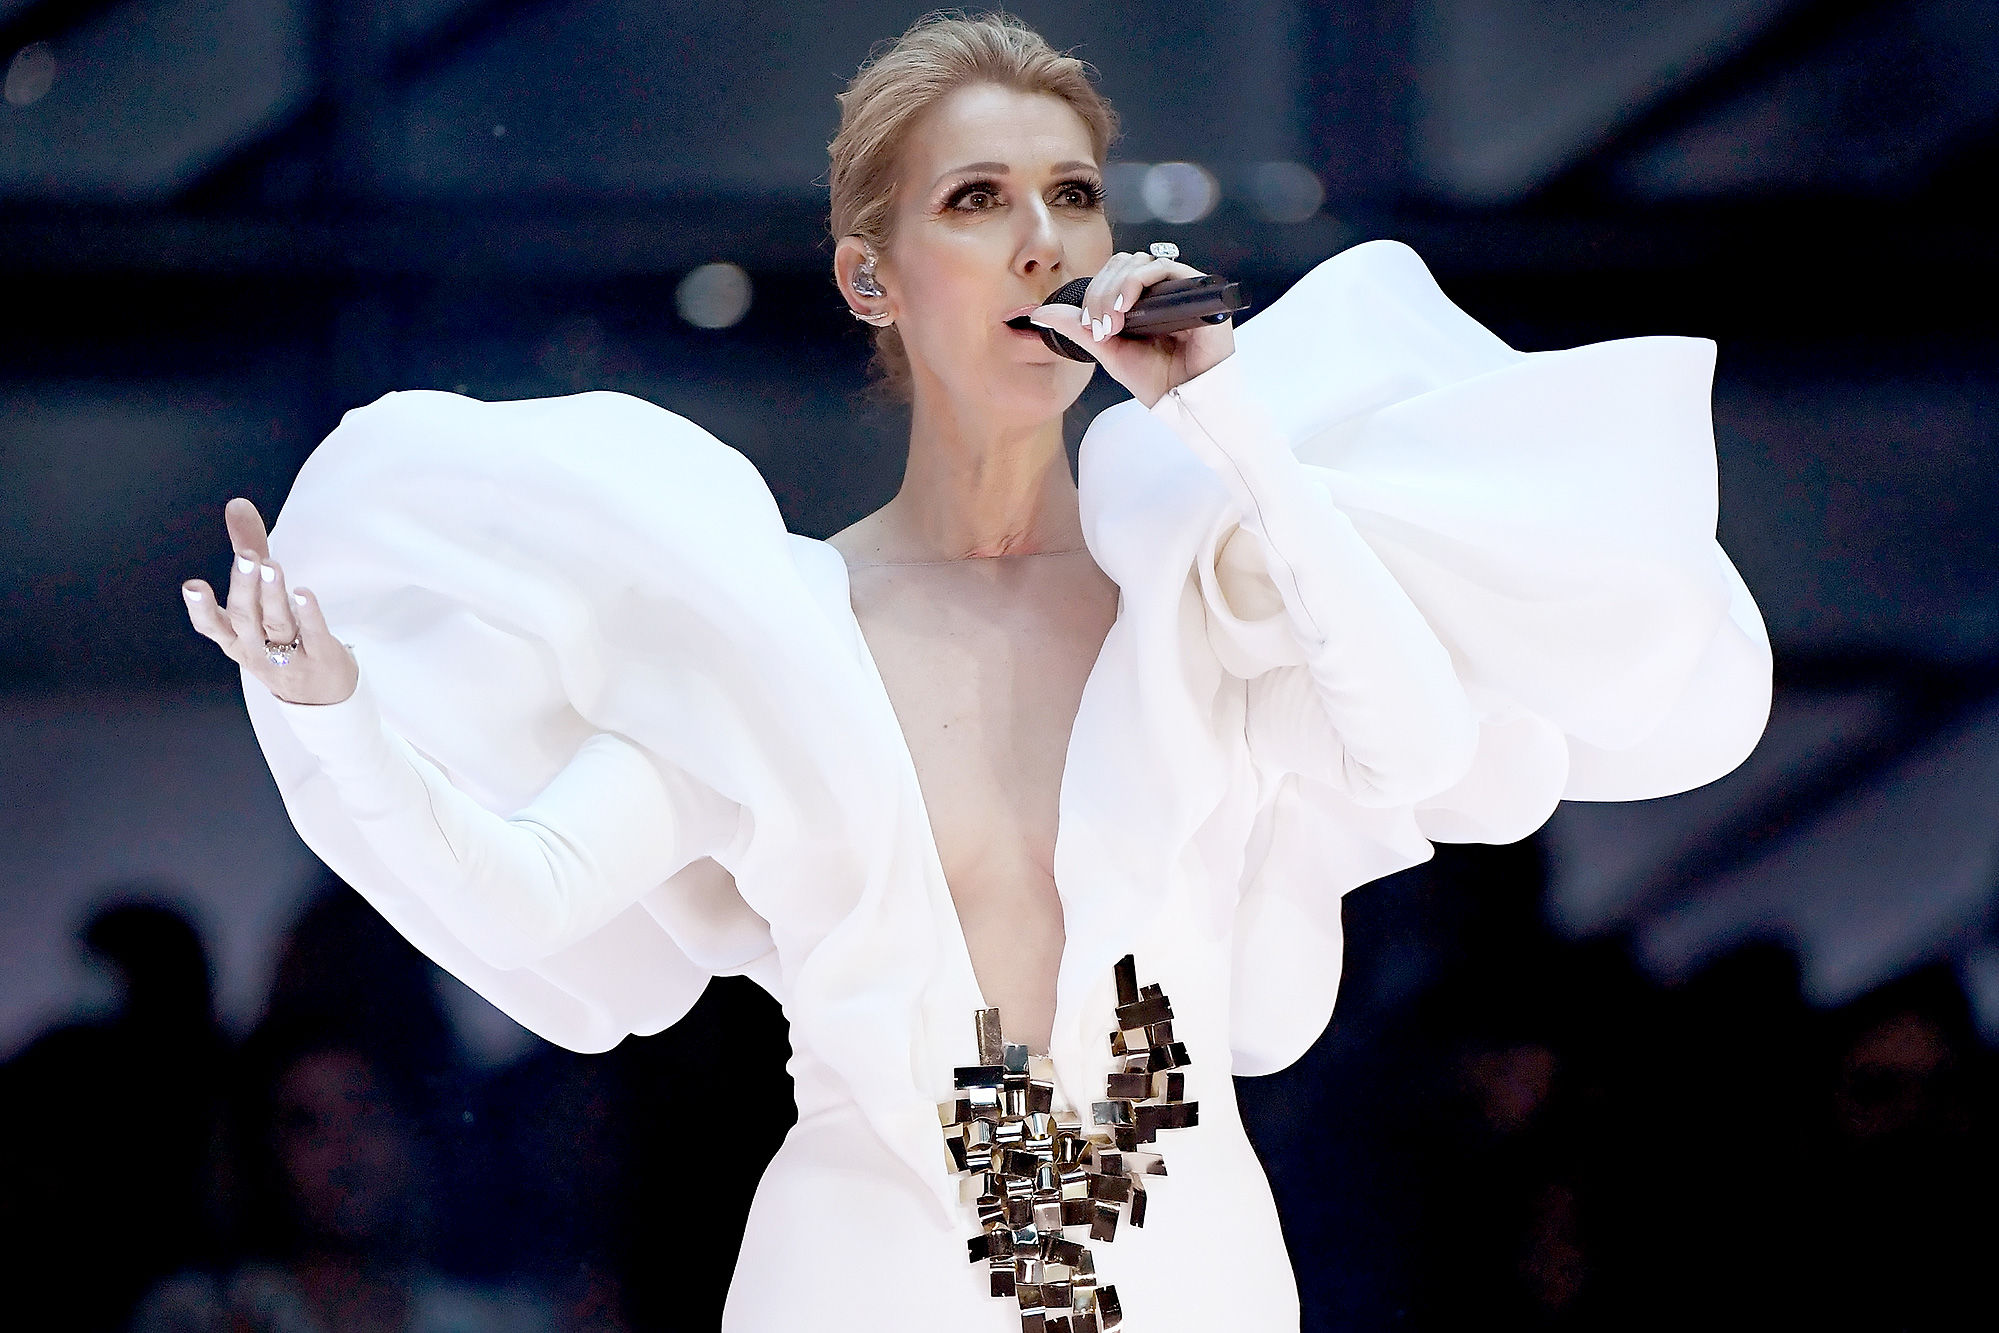 Céline Dion Celebrates 20th Anniversary of 'My Heart Will Go On' with Emotional Performance